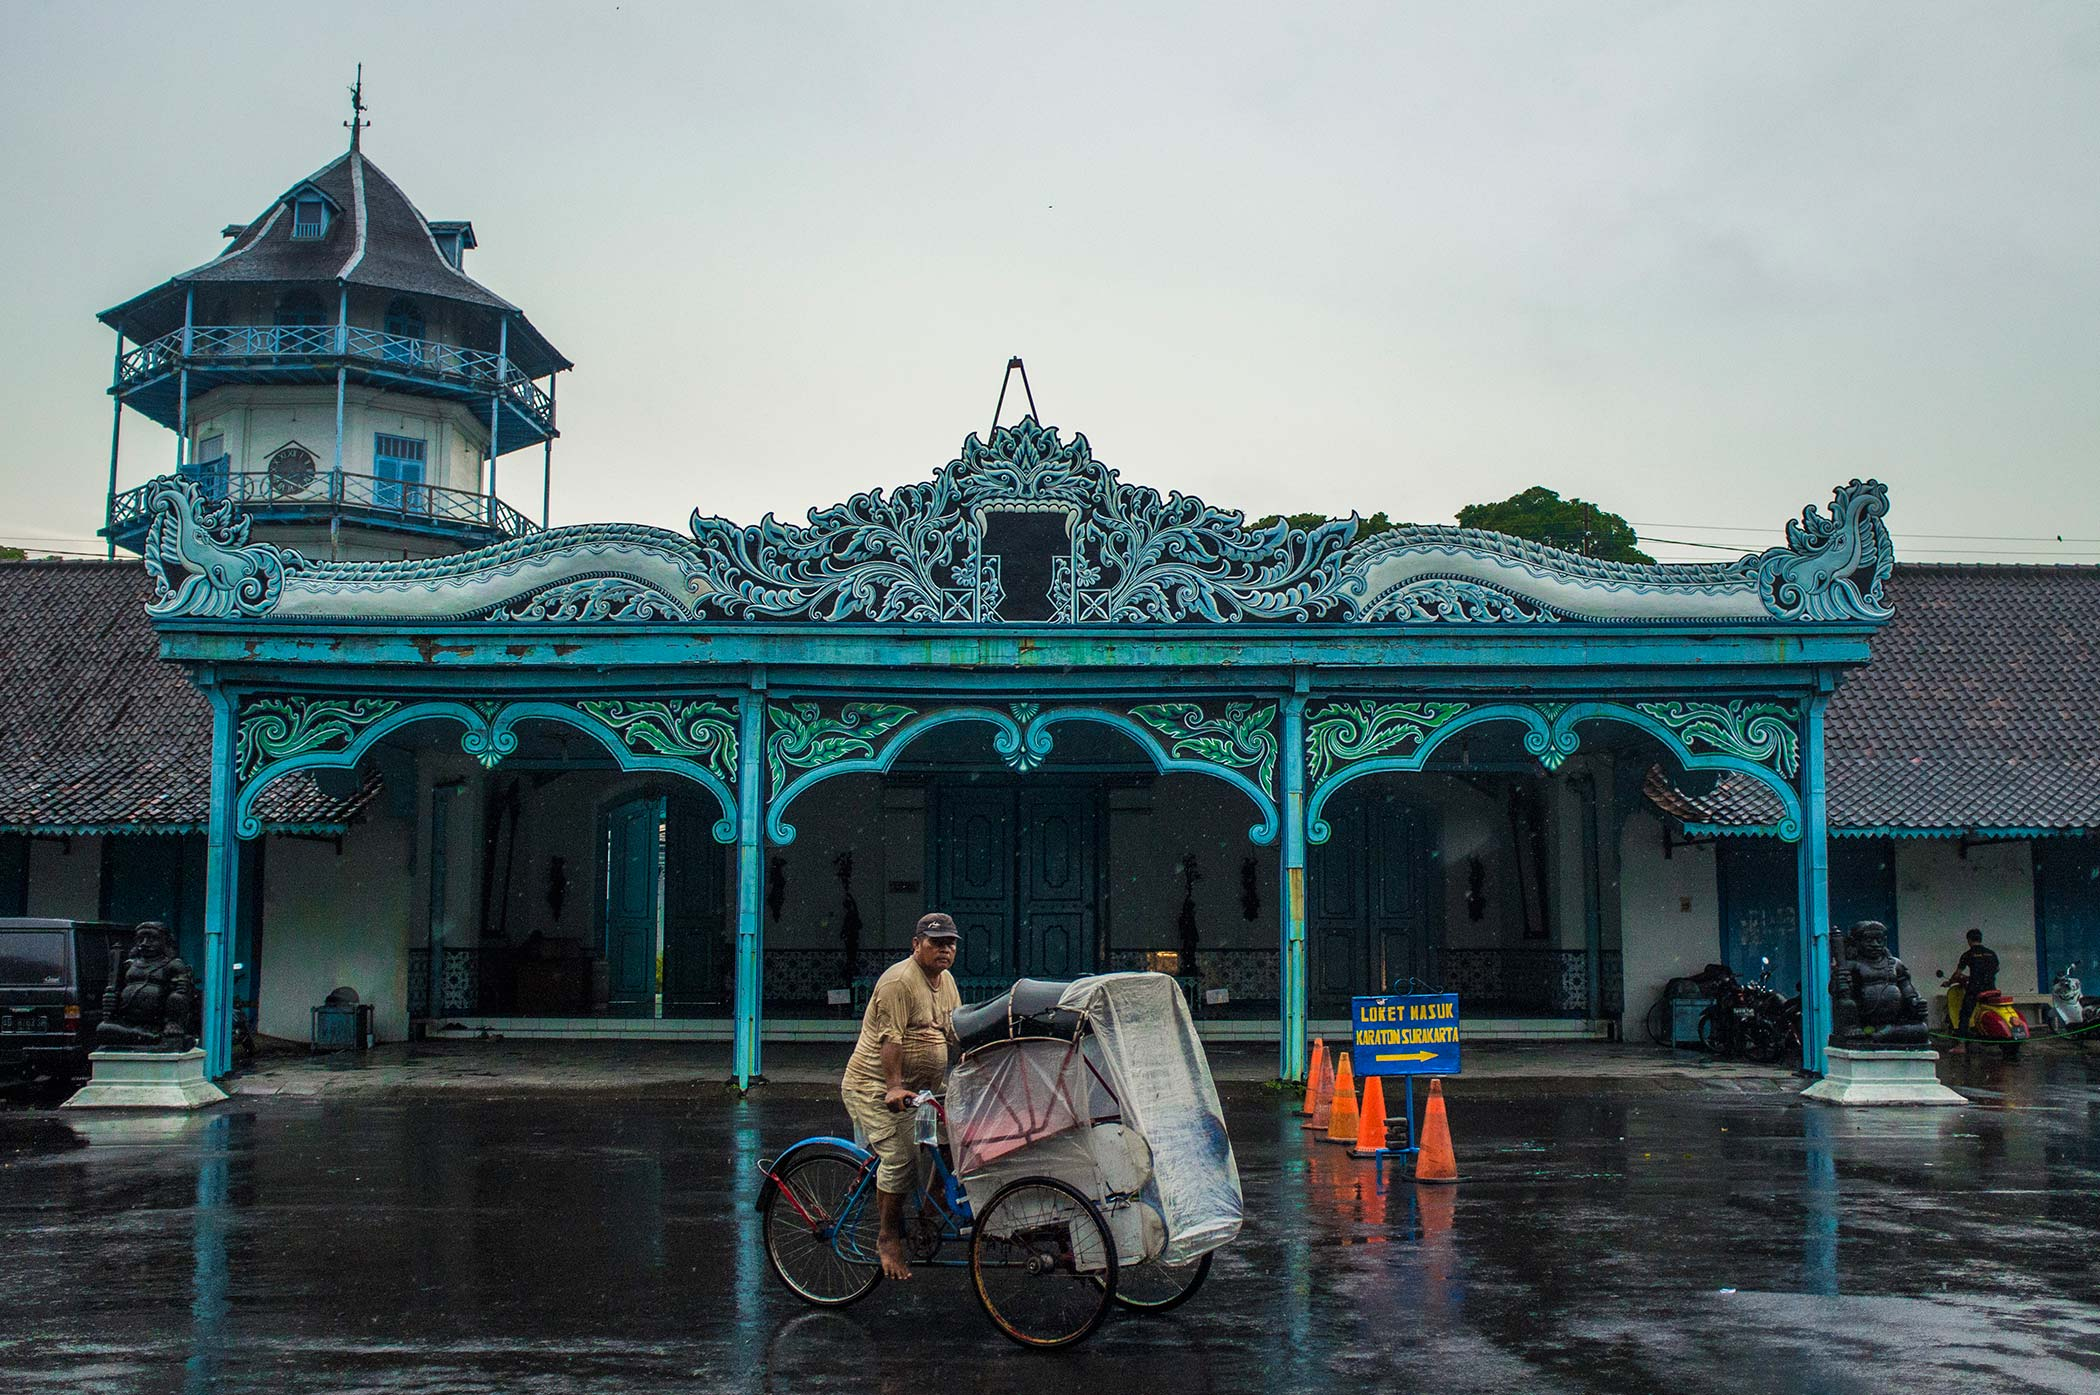 A man on a becak passes the main facade of Baleroto in Kemandungan Lor, the entrance of the Sri Manganti compound in Kraton Surakarta. The clock tower in the background is called Panggung Songgobuwono. The principal residence of the Sultan was the Kraton (palace), sometimes called the Kraton Solo.